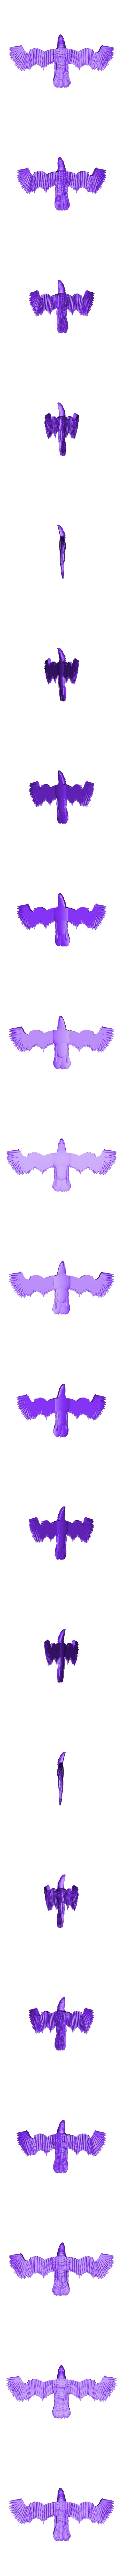 phoenix.stl Download free STL file Elf Phoenix • 3D printing model, mrhers2